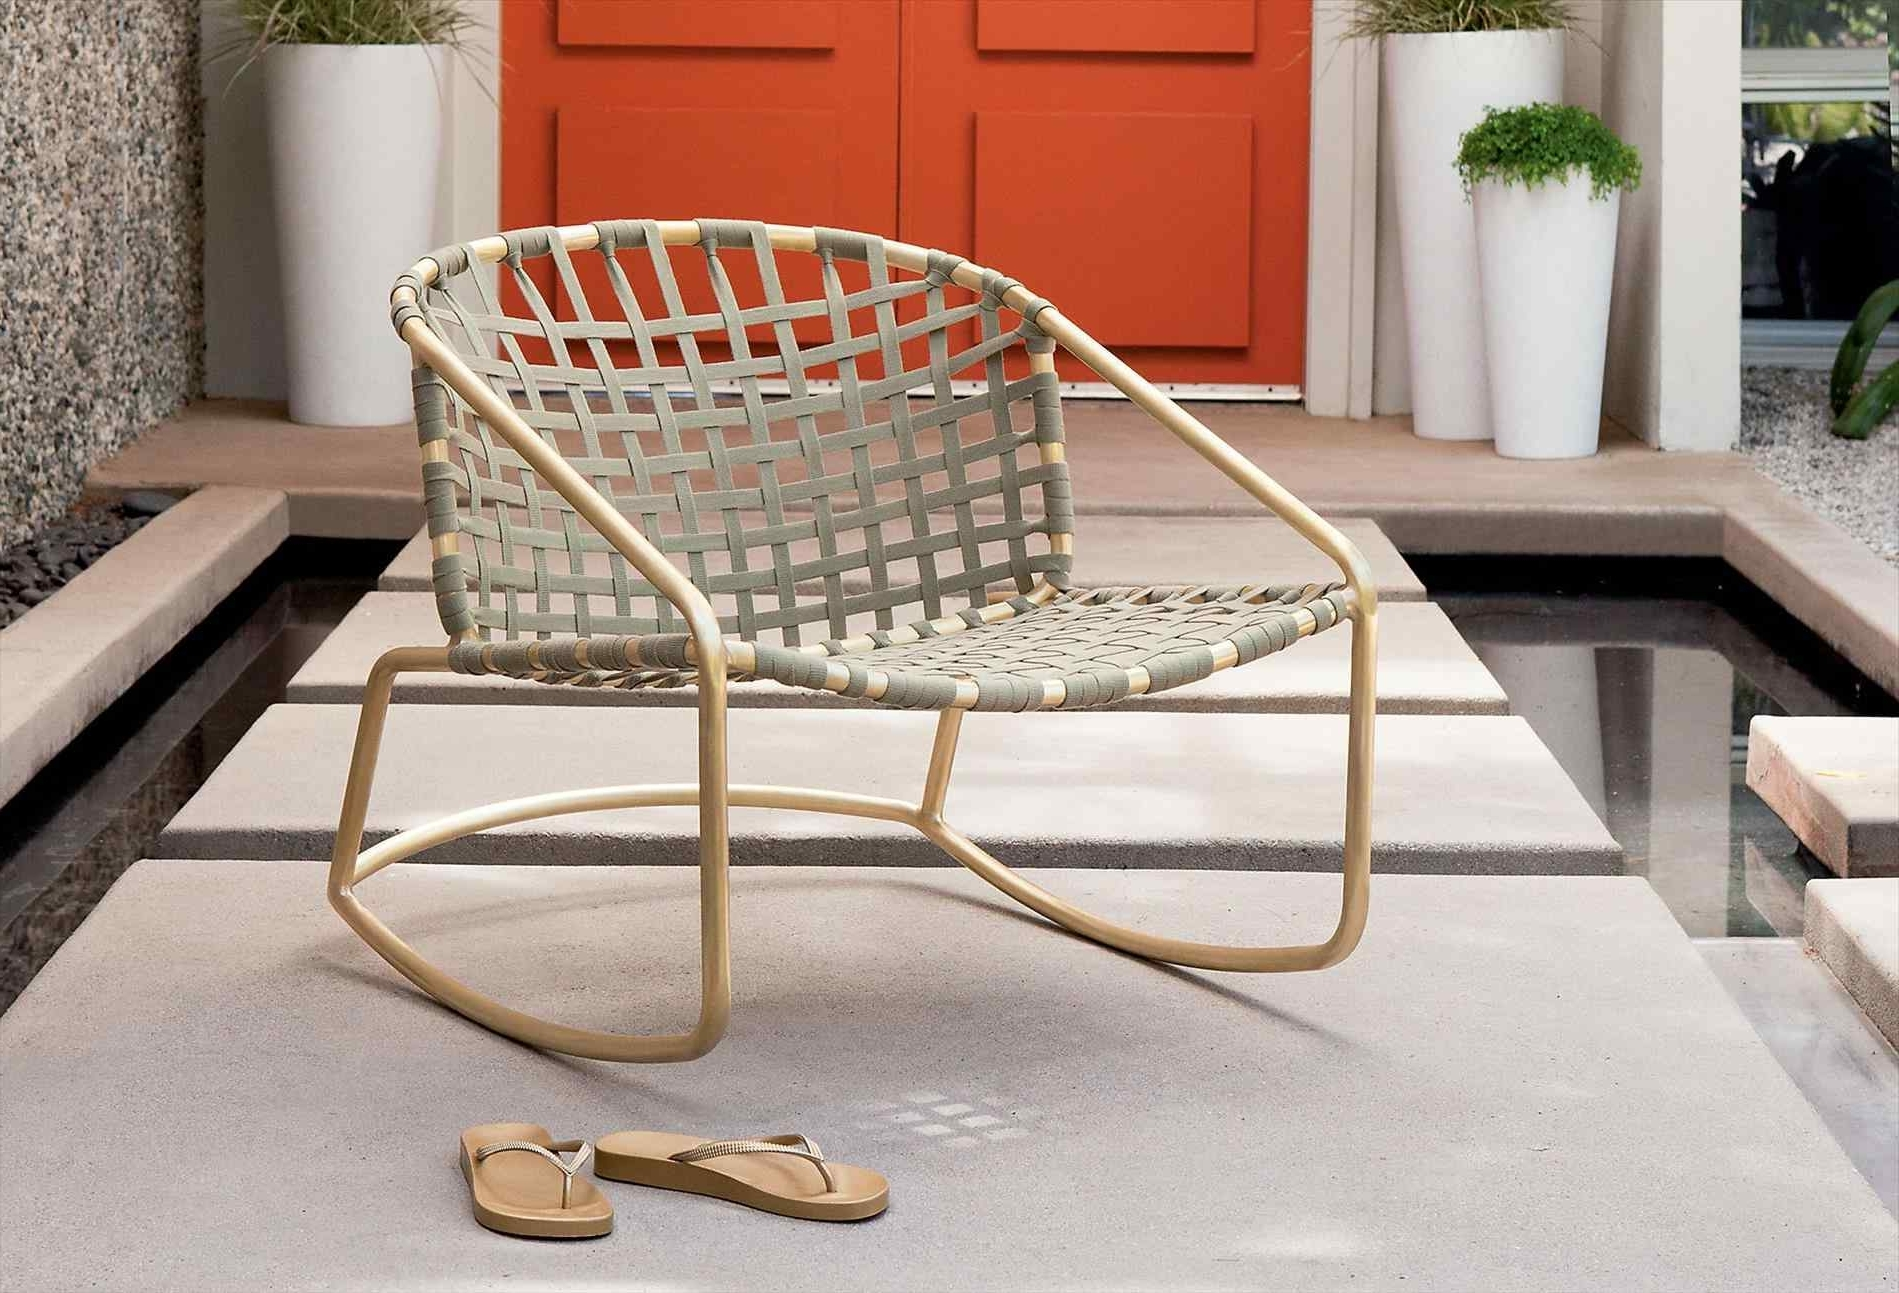 used and bar furniture chair walter repair chic jordan lamb brown reviews patio prices therapy on parts sale designs covers casual vintage replacements outdoor